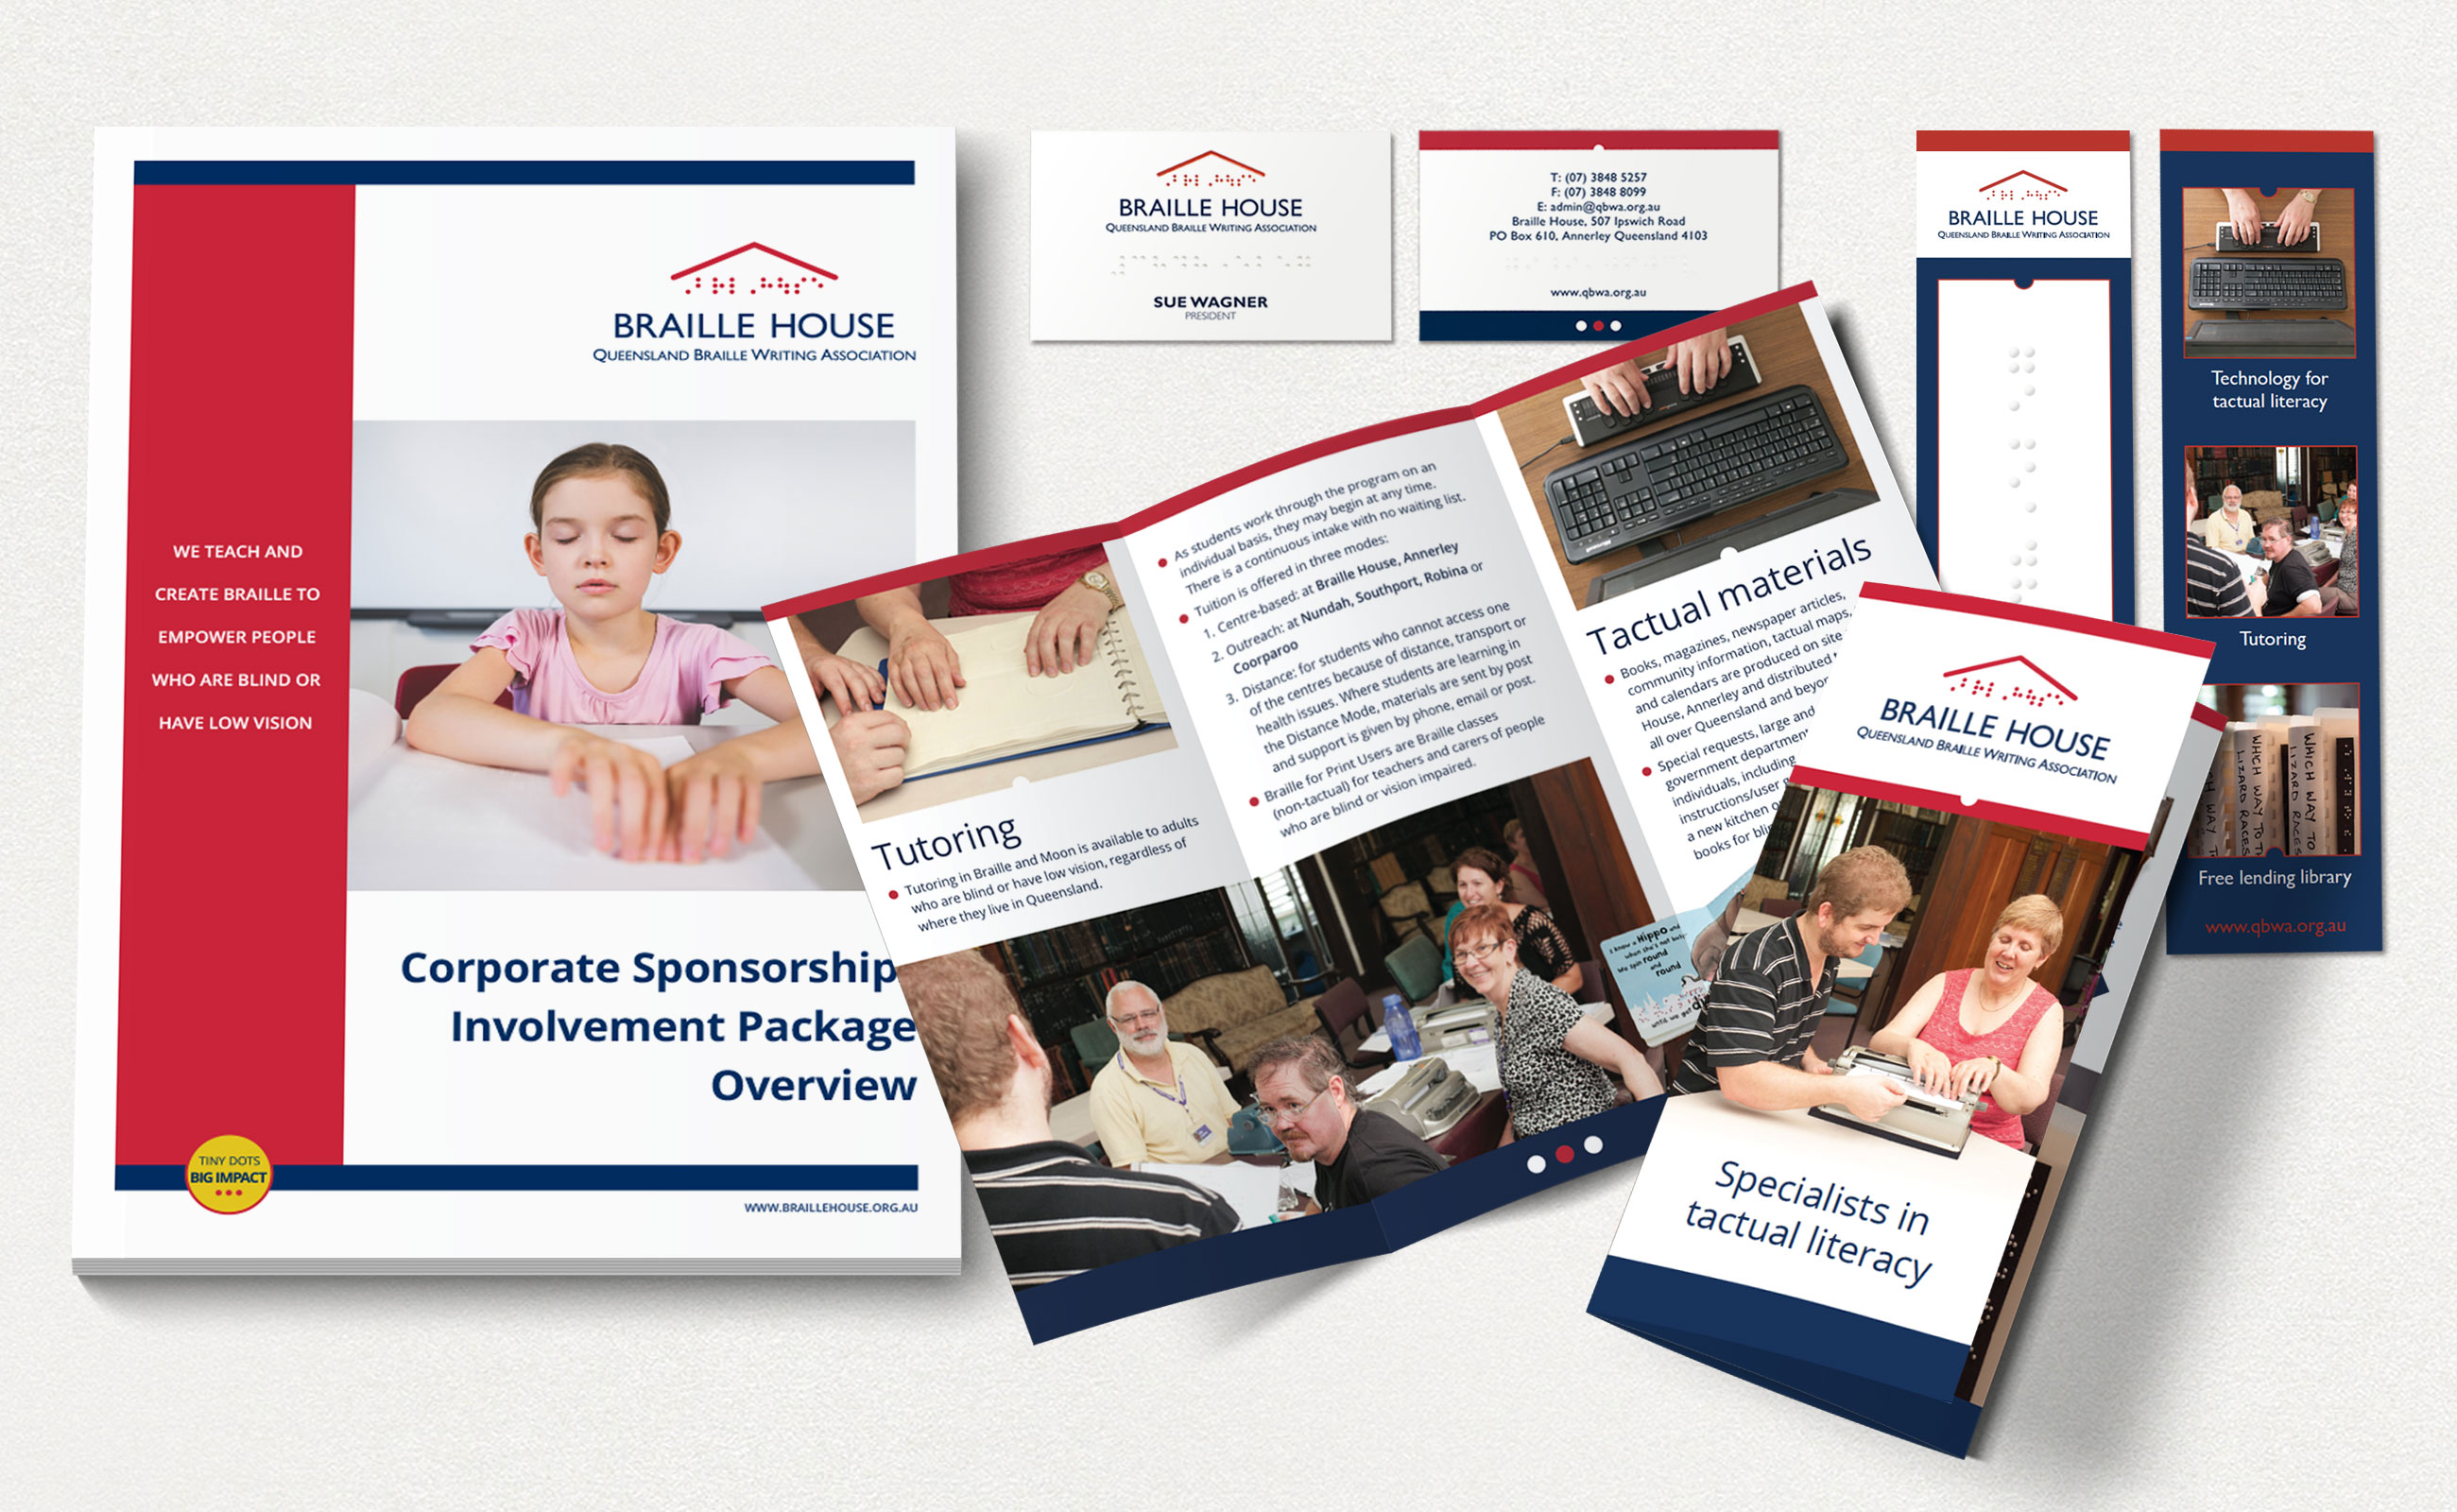 Braille House stationery Corporate Sponsorship Involvement Package, brochures, bookmarks and business cards